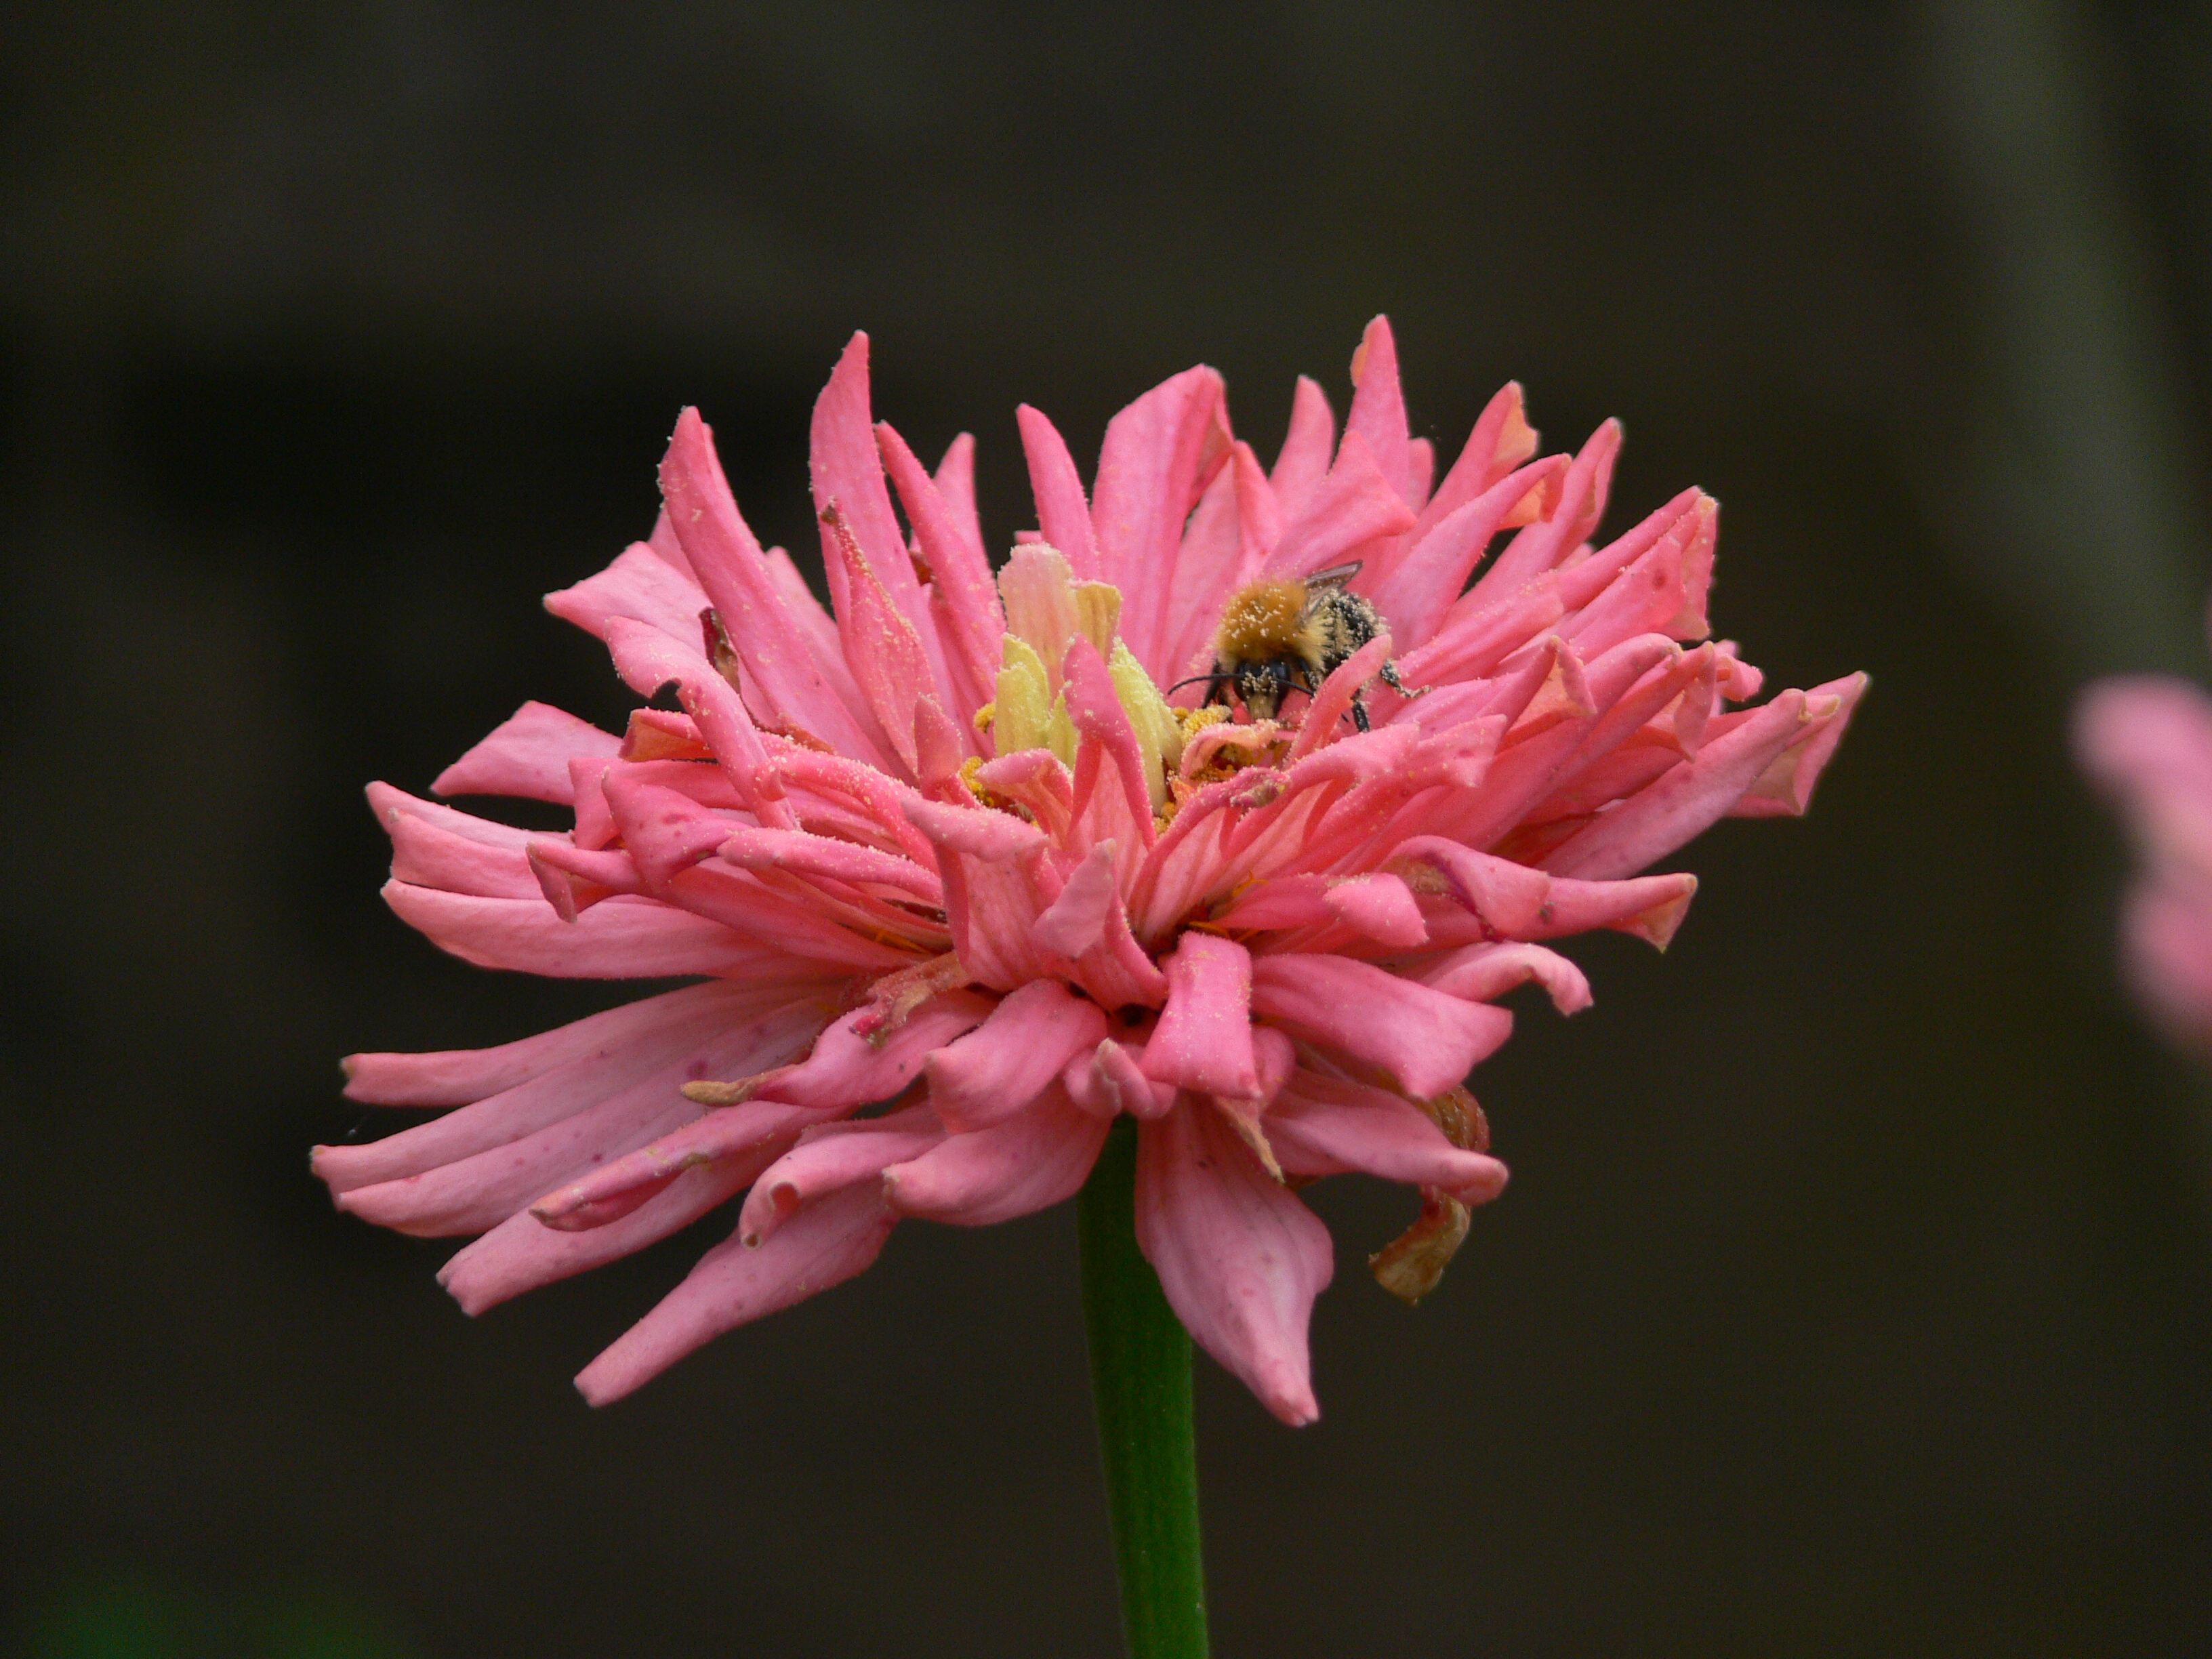 bee, Animal, Bumble, Flower, Insect, HQ Photo